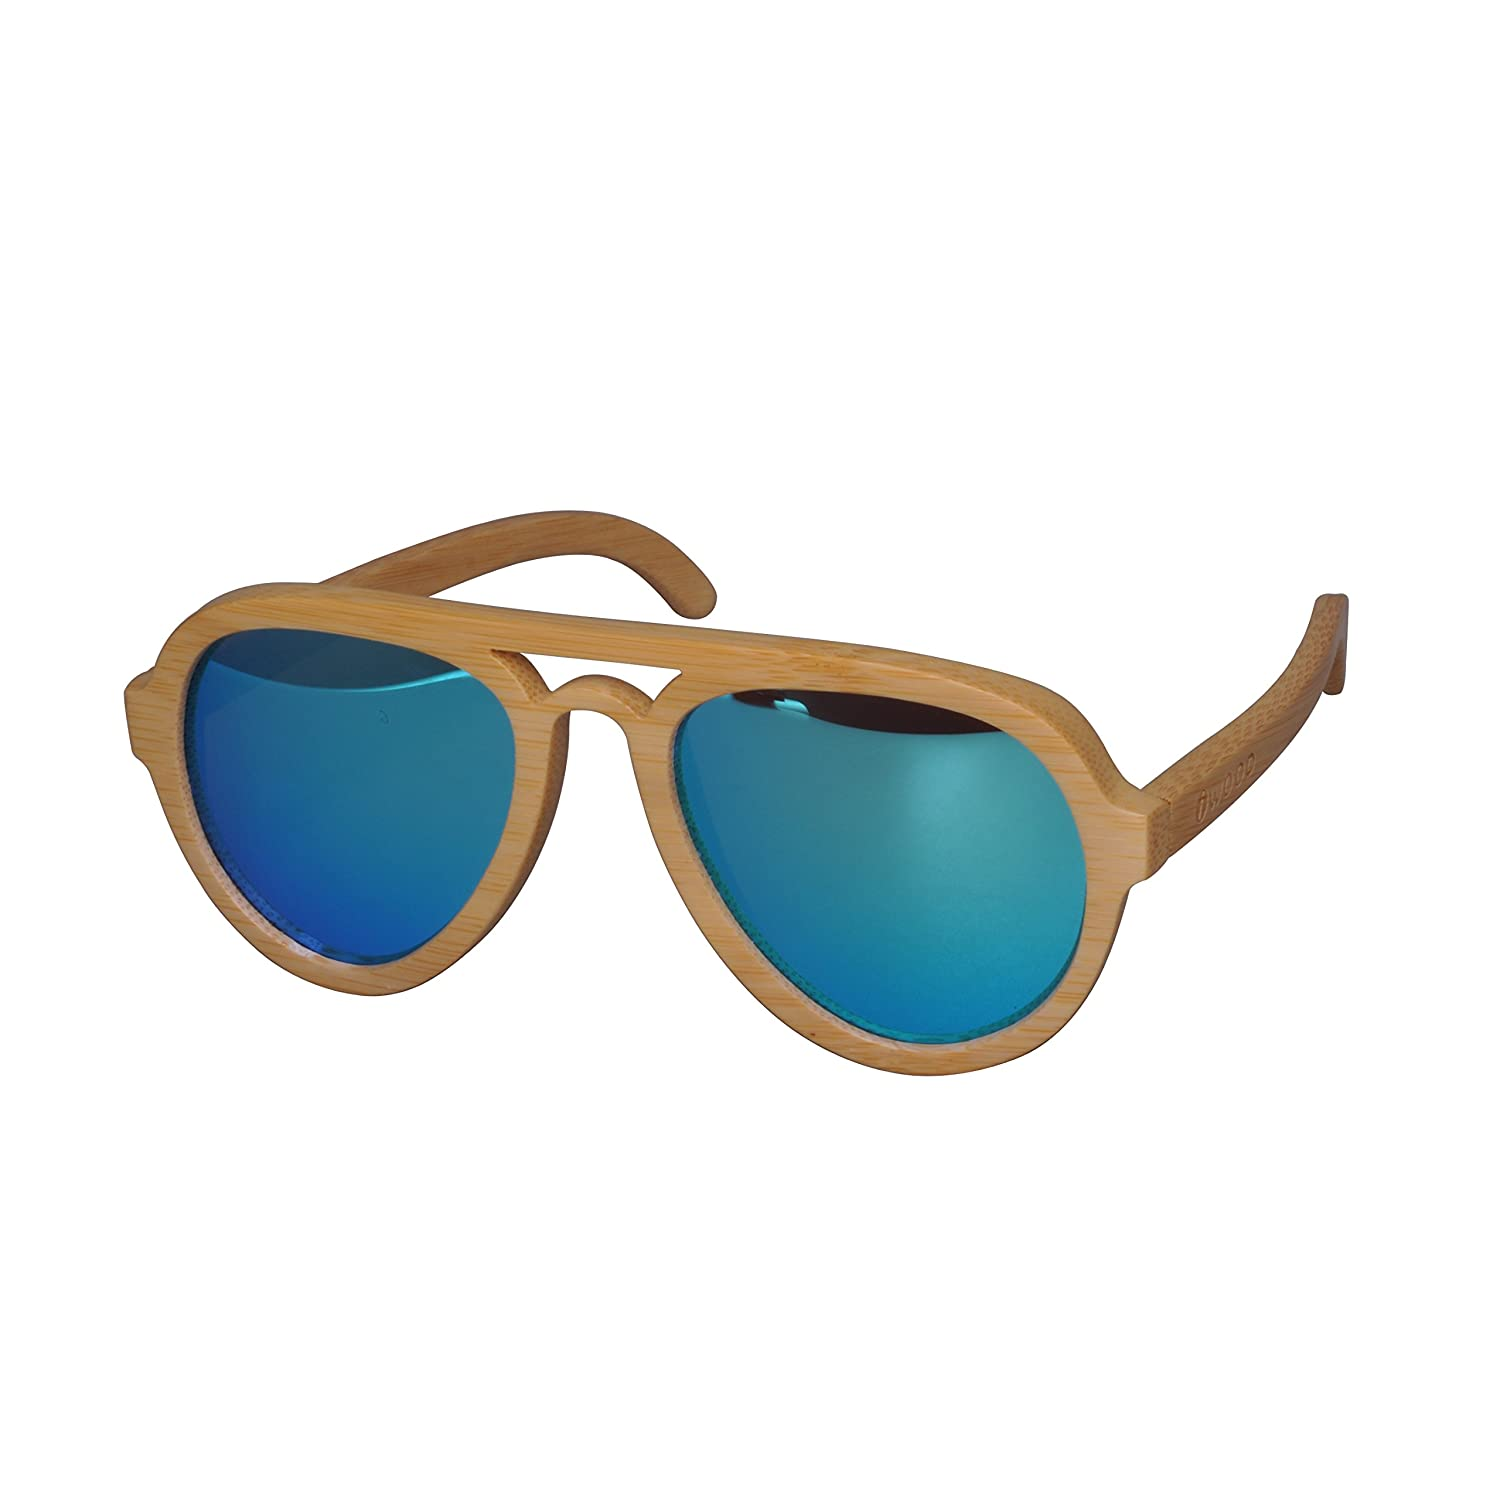 Iwood Handmade Natural Bamboo Frames Polarized Blue Lens Wooden Sunglasses